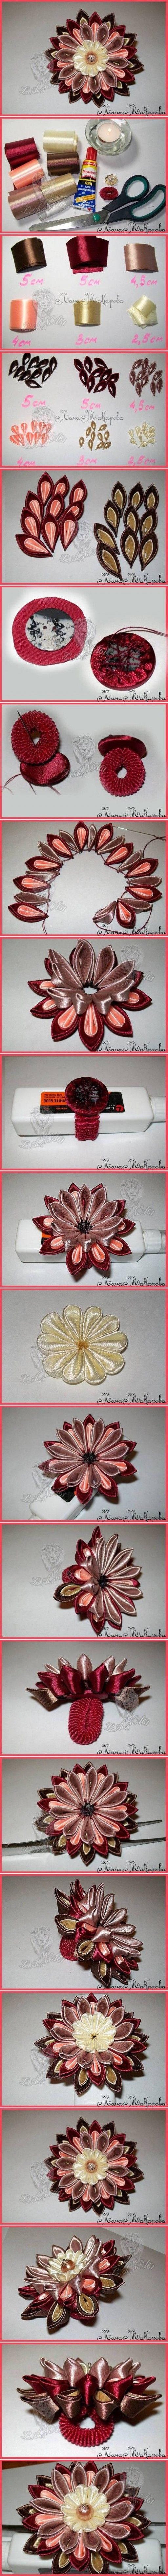 How to make Multi Layer Ribbon Flower step by step DIY tutorial instructions, How to, how to do, diy instructions, crafts, do it yourself, d by Mary Smith fSesz